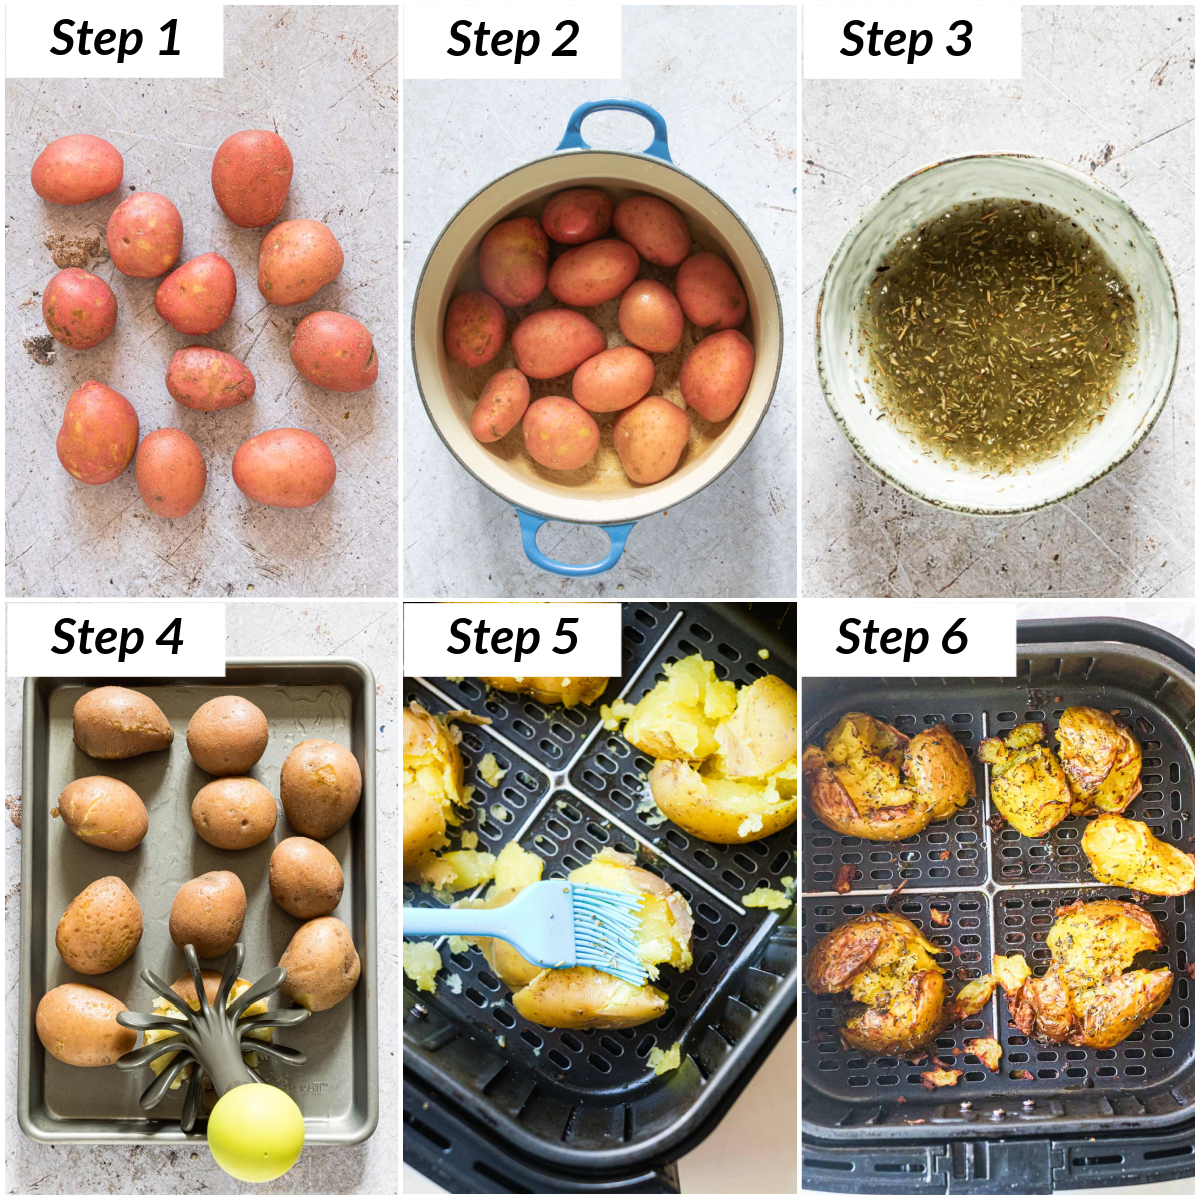 image collage showing the steps for making air fryer smashed potatoes